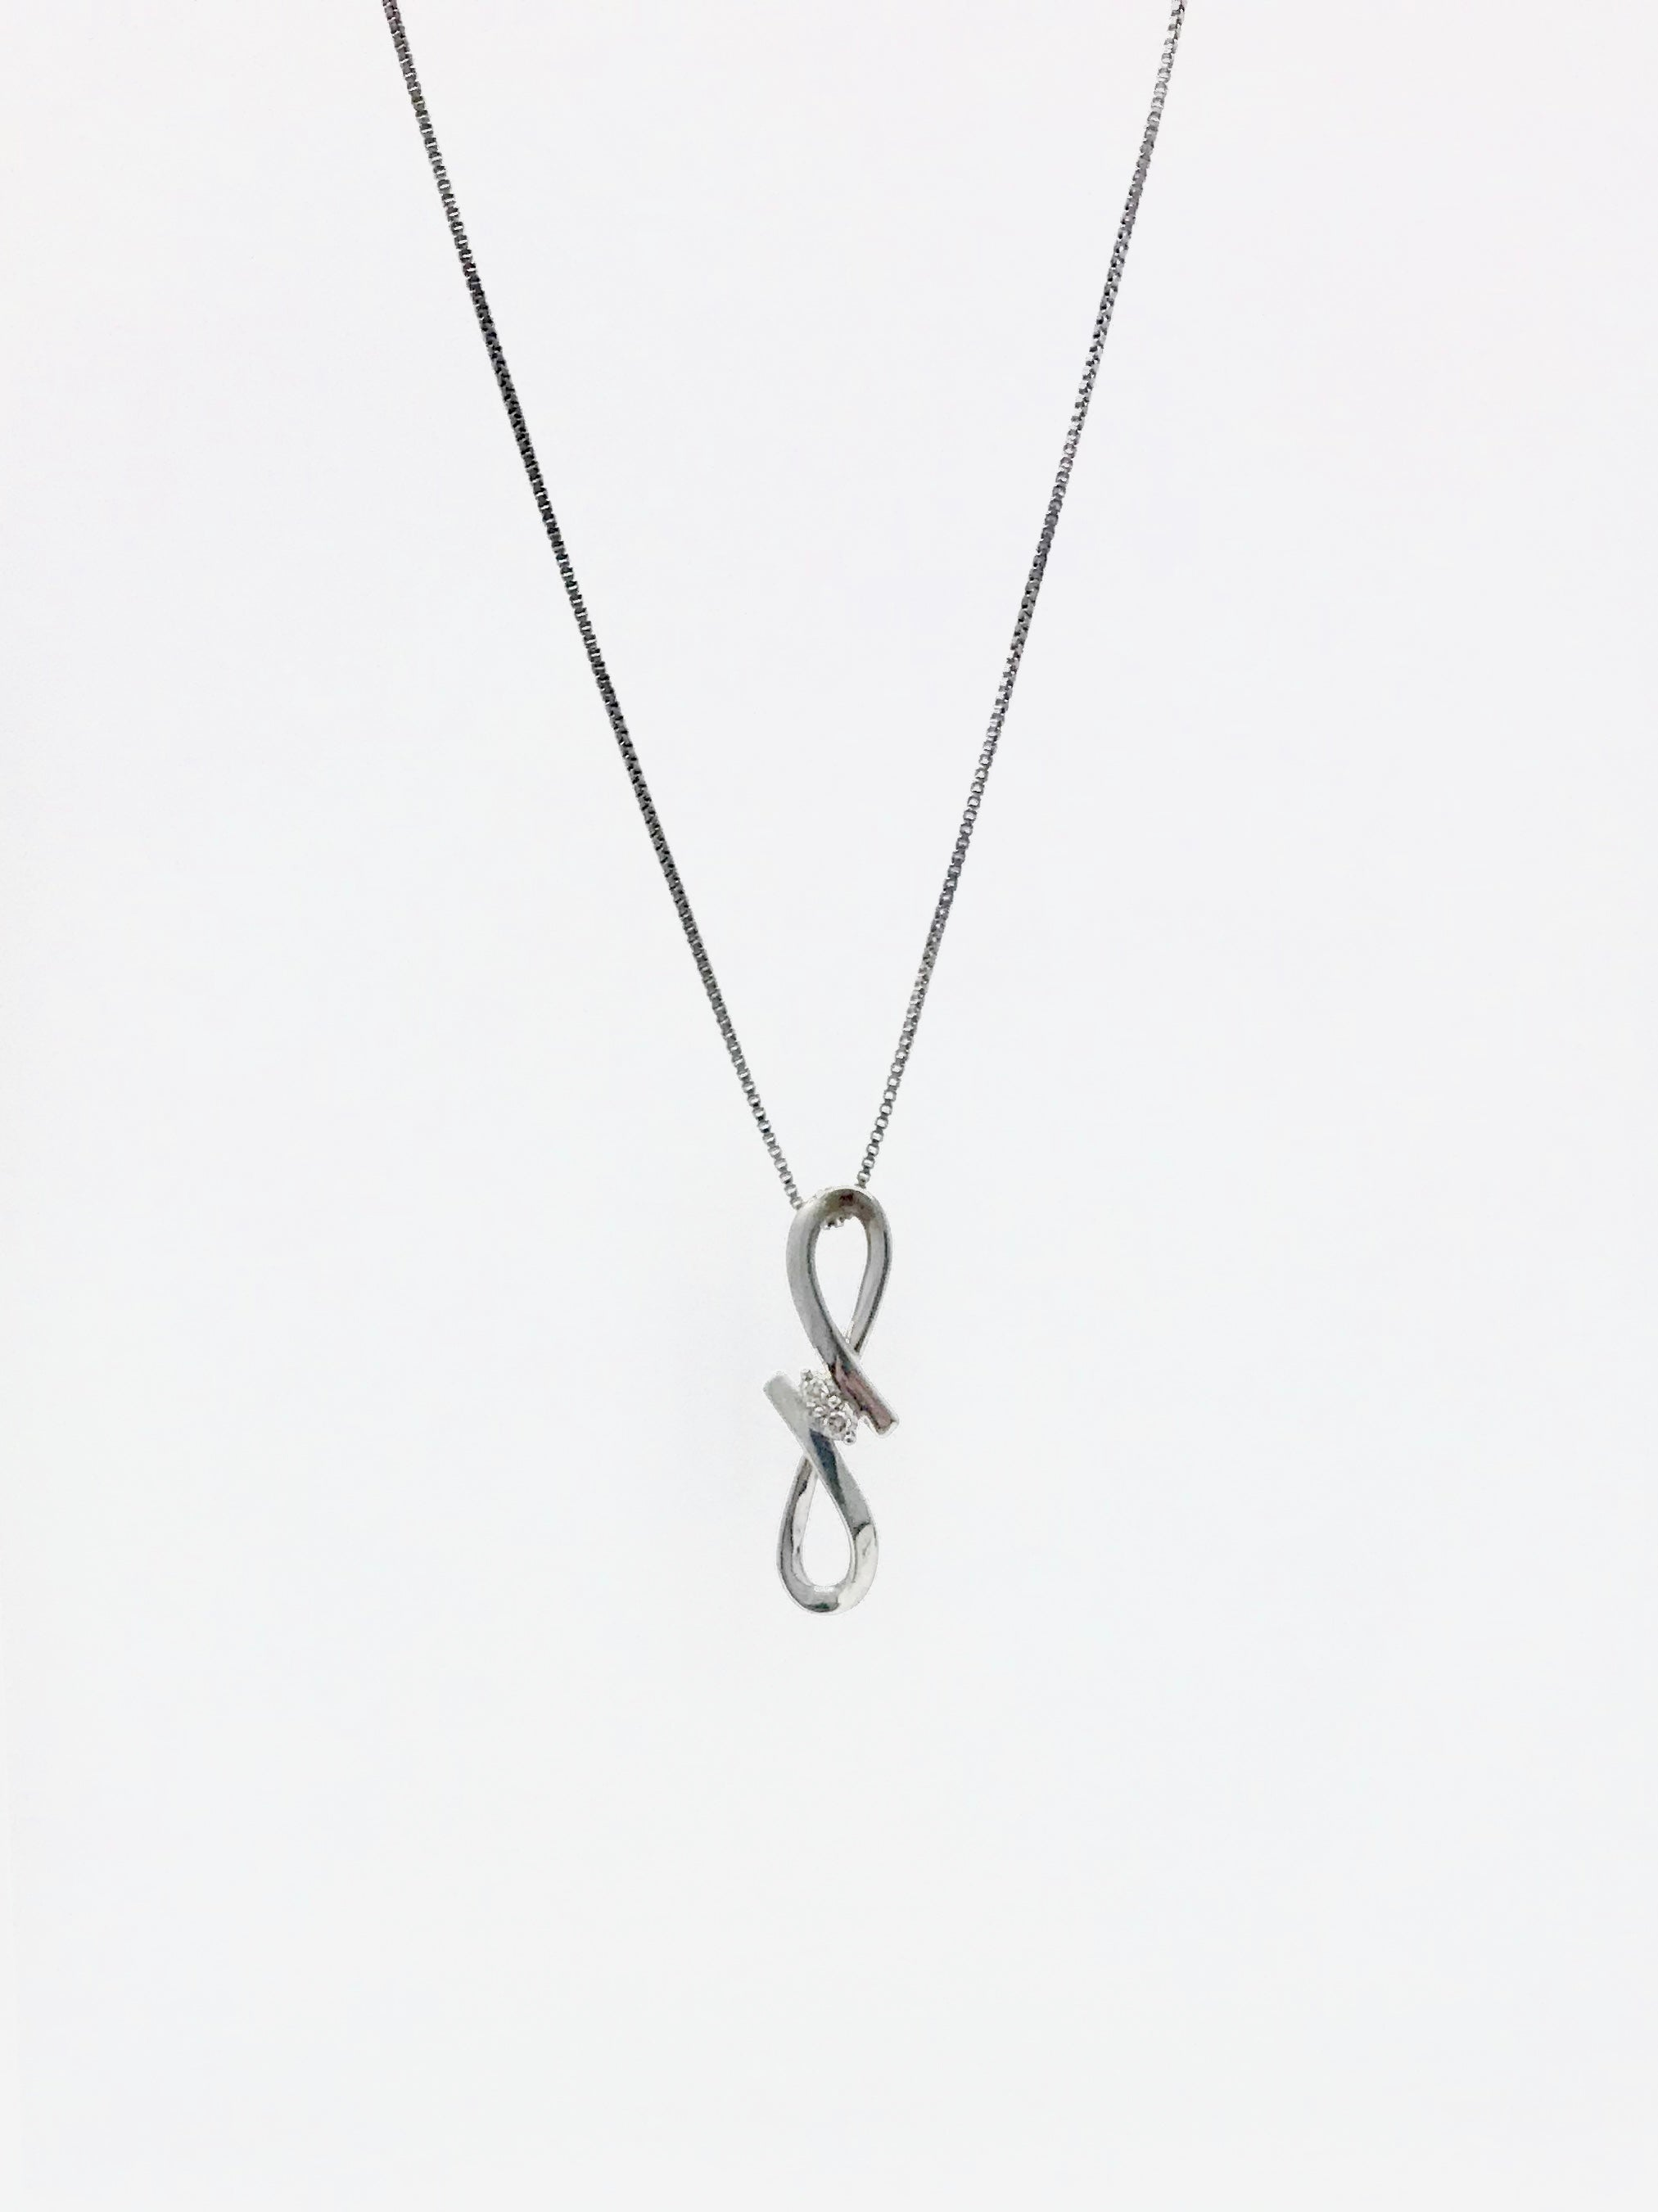 Silver and Diamond Necklace